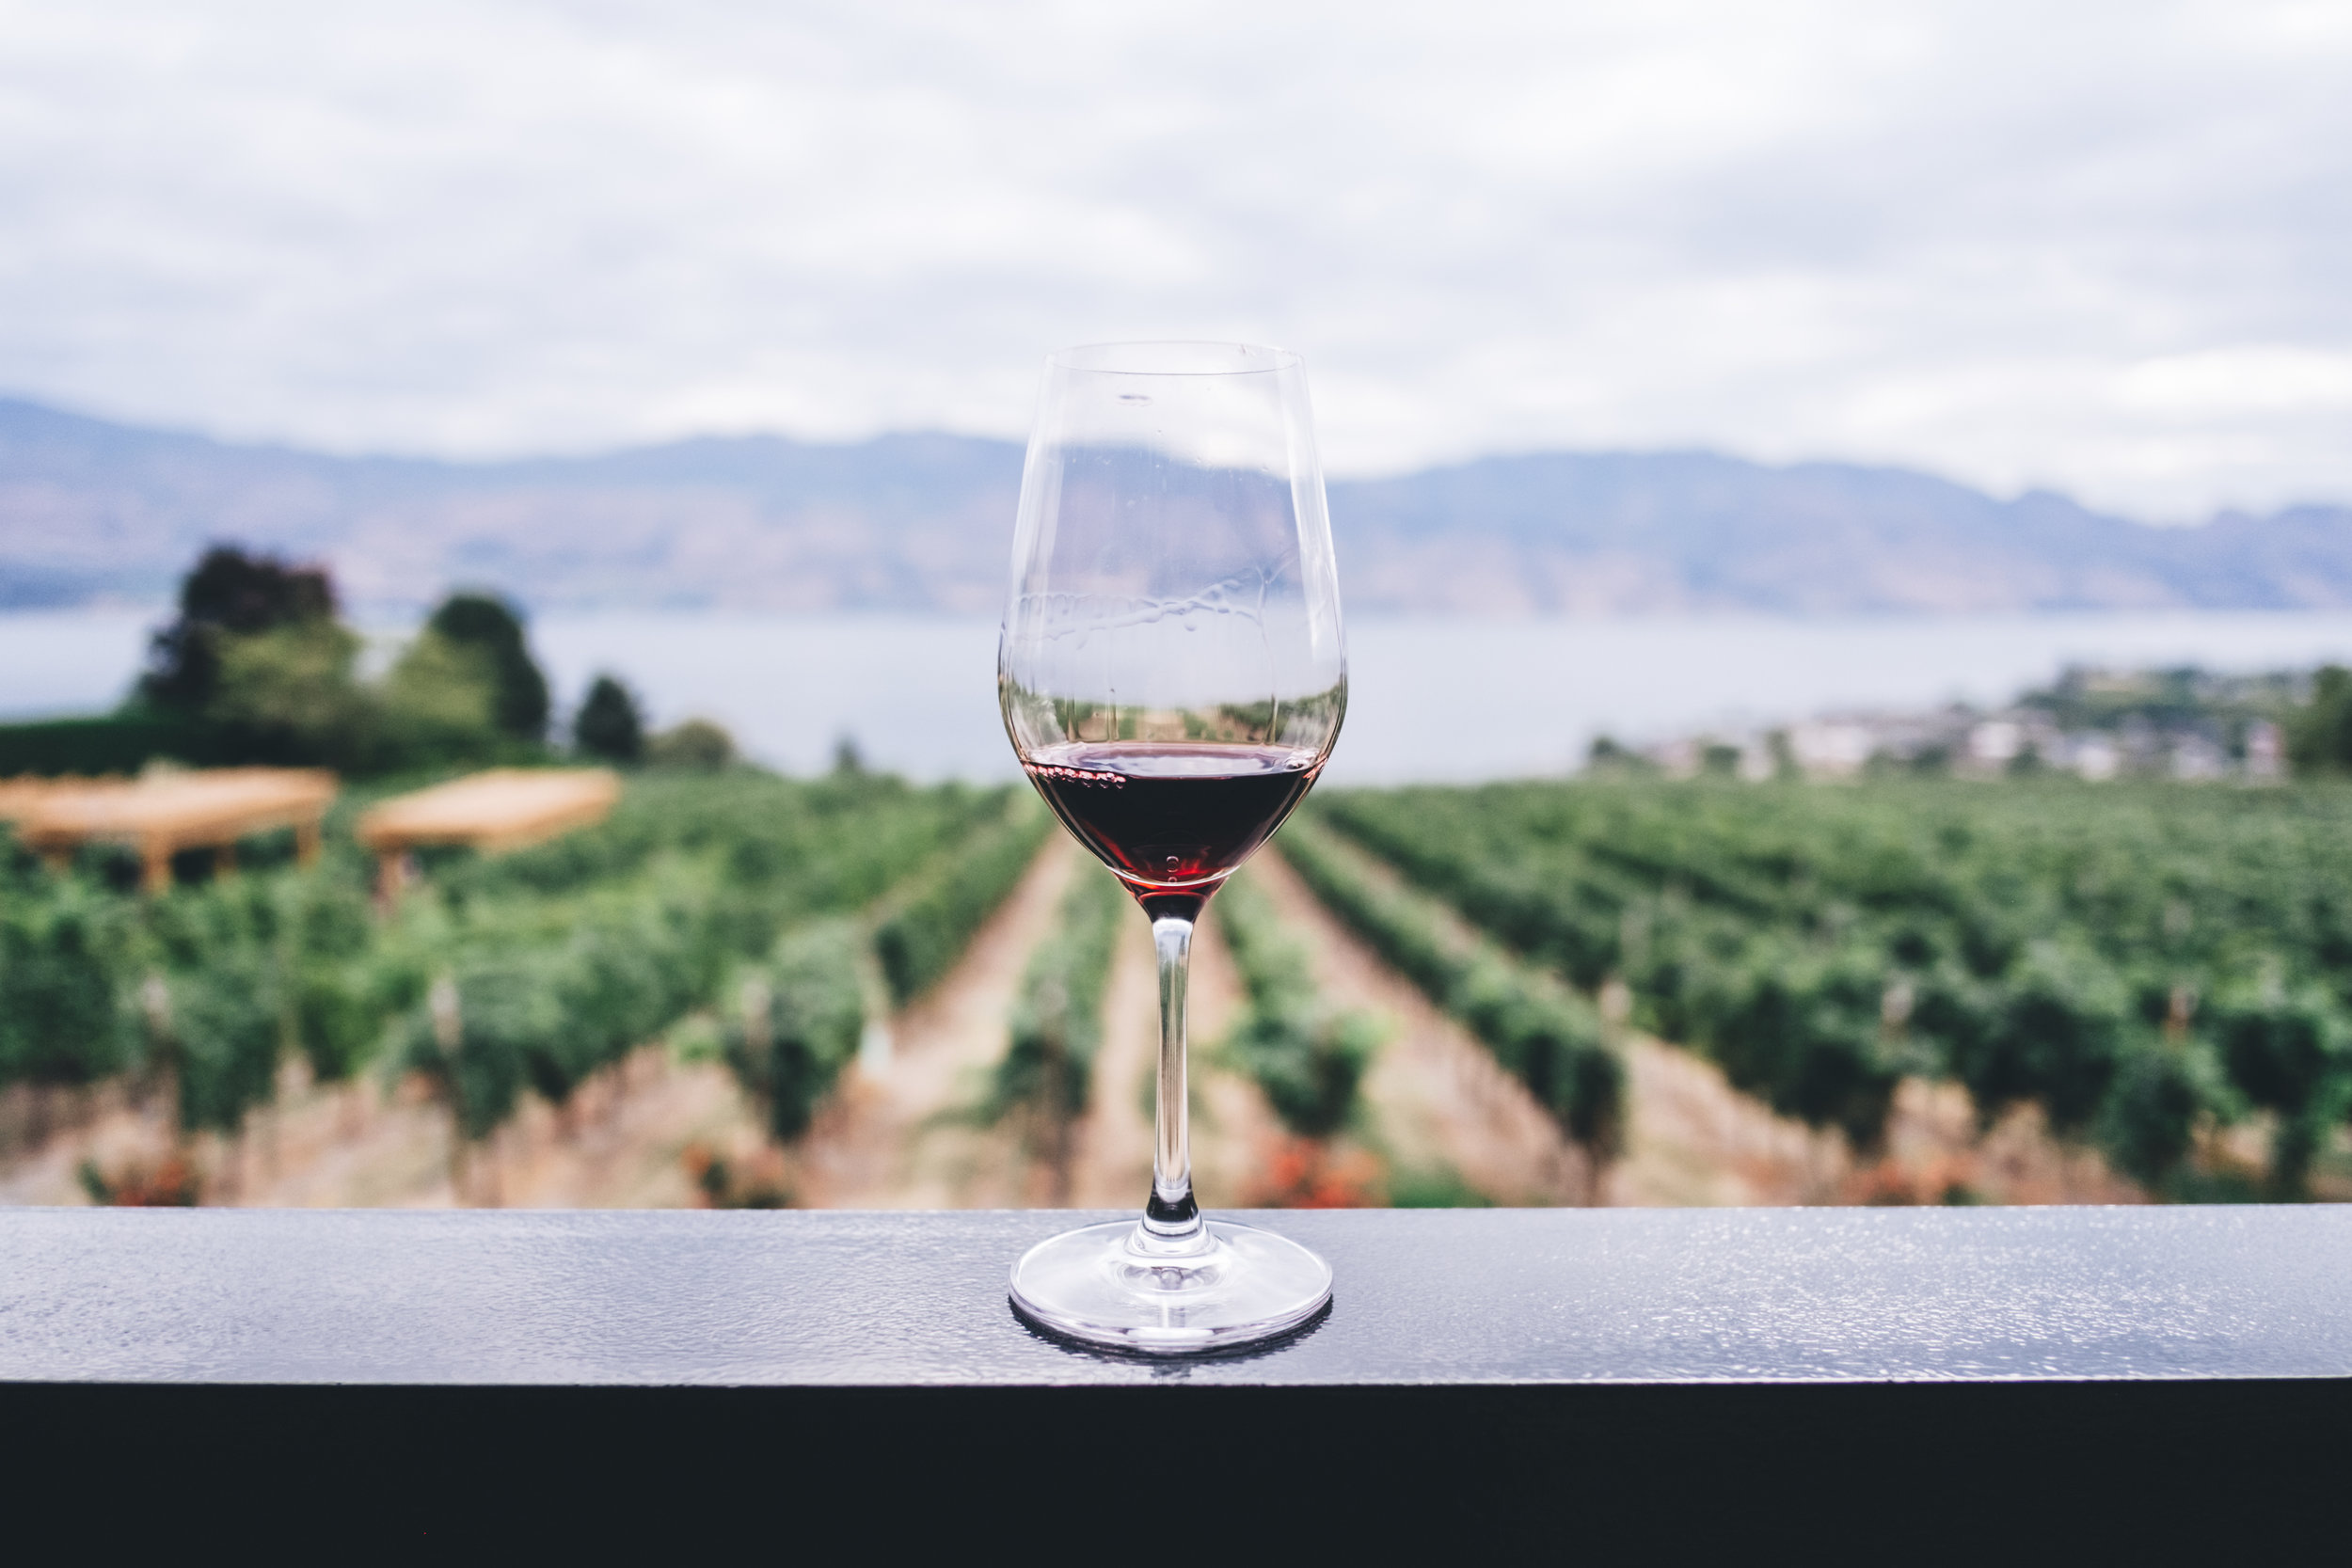 Okanagan wines - Currently working on driving online sales for three wineries in the Okanagan region: Mount Boucherie, Winemakers CUT & Ricco Bambino. Stay tuned for updates.